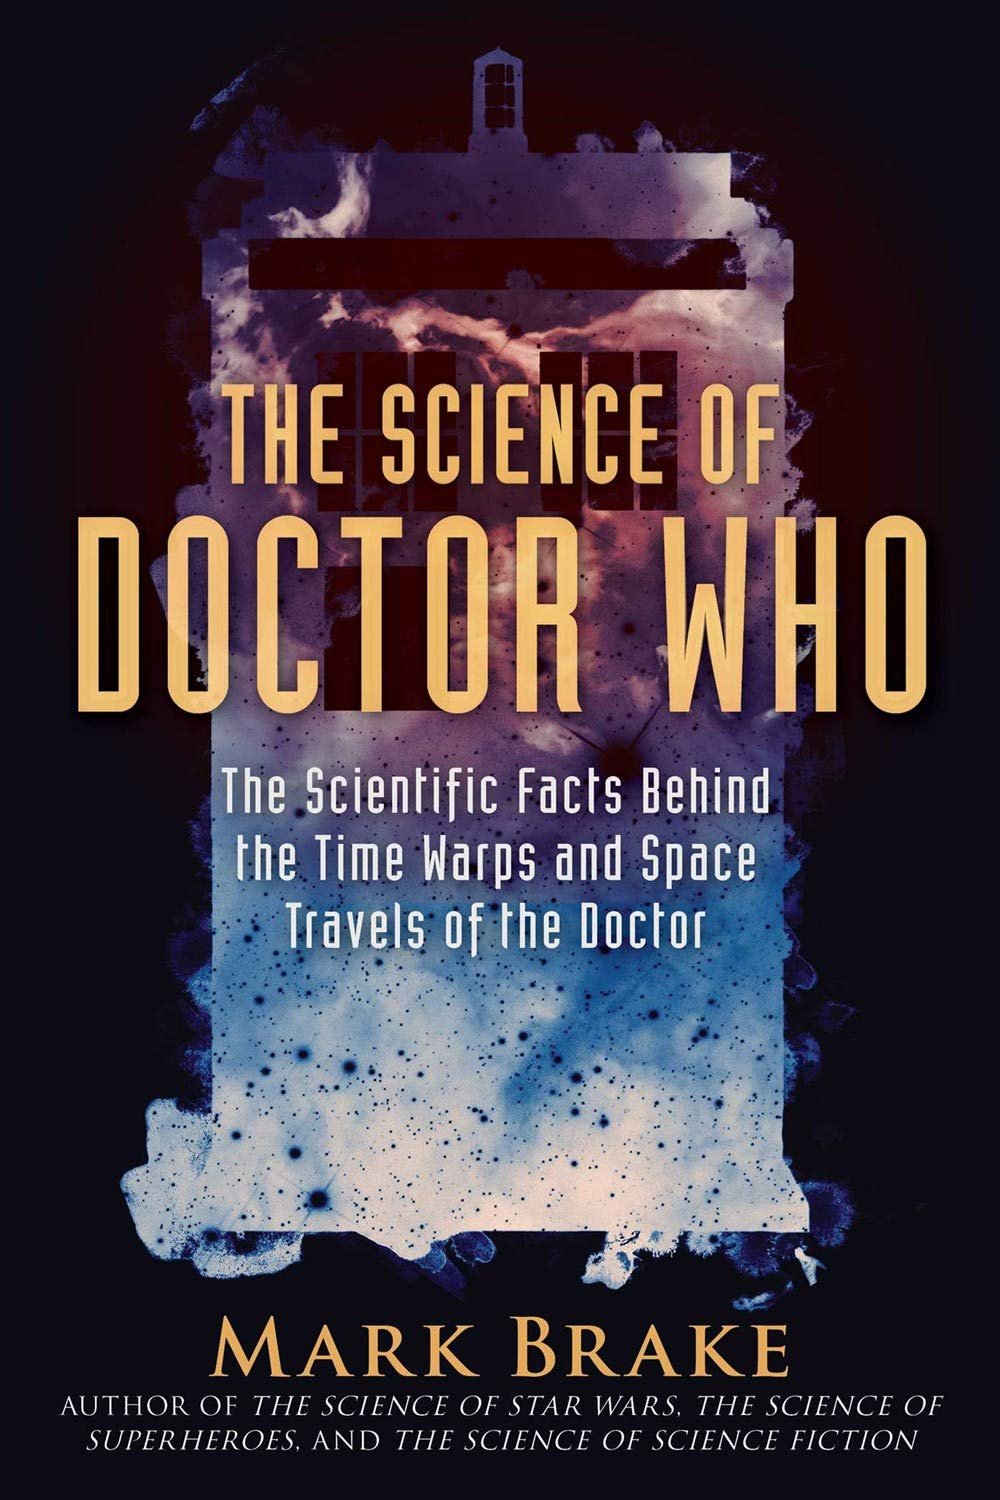 The Science of Doctor Who: The Scientific Facts Behind the Time Warps and Space Travels of the Doctor